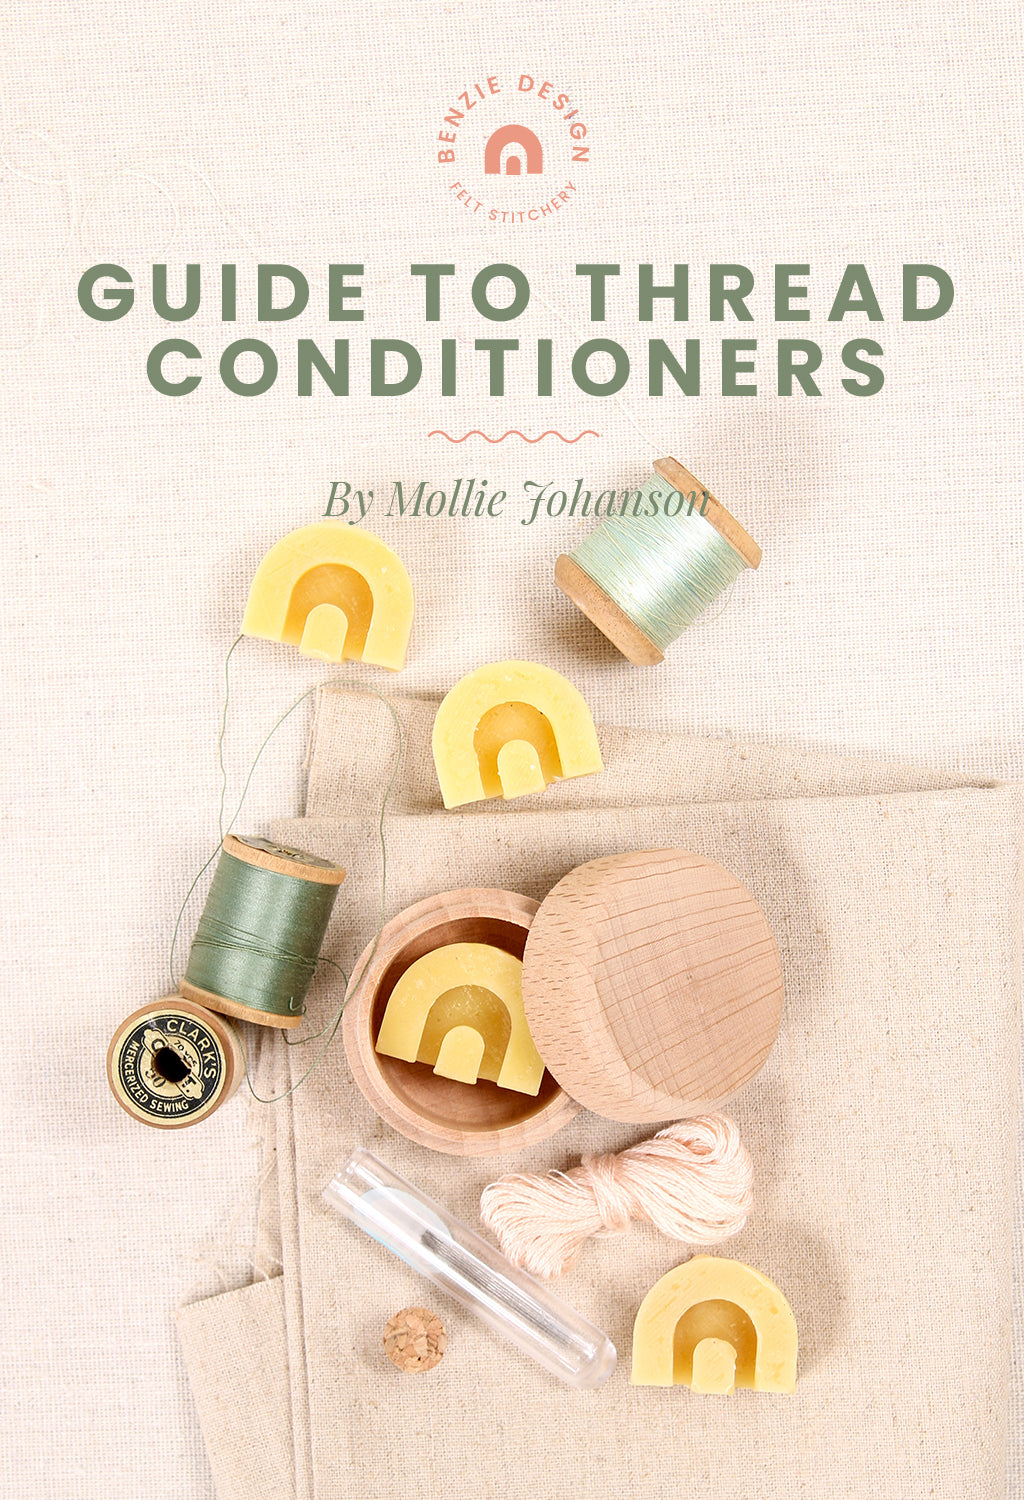 Guide to thread conditioners